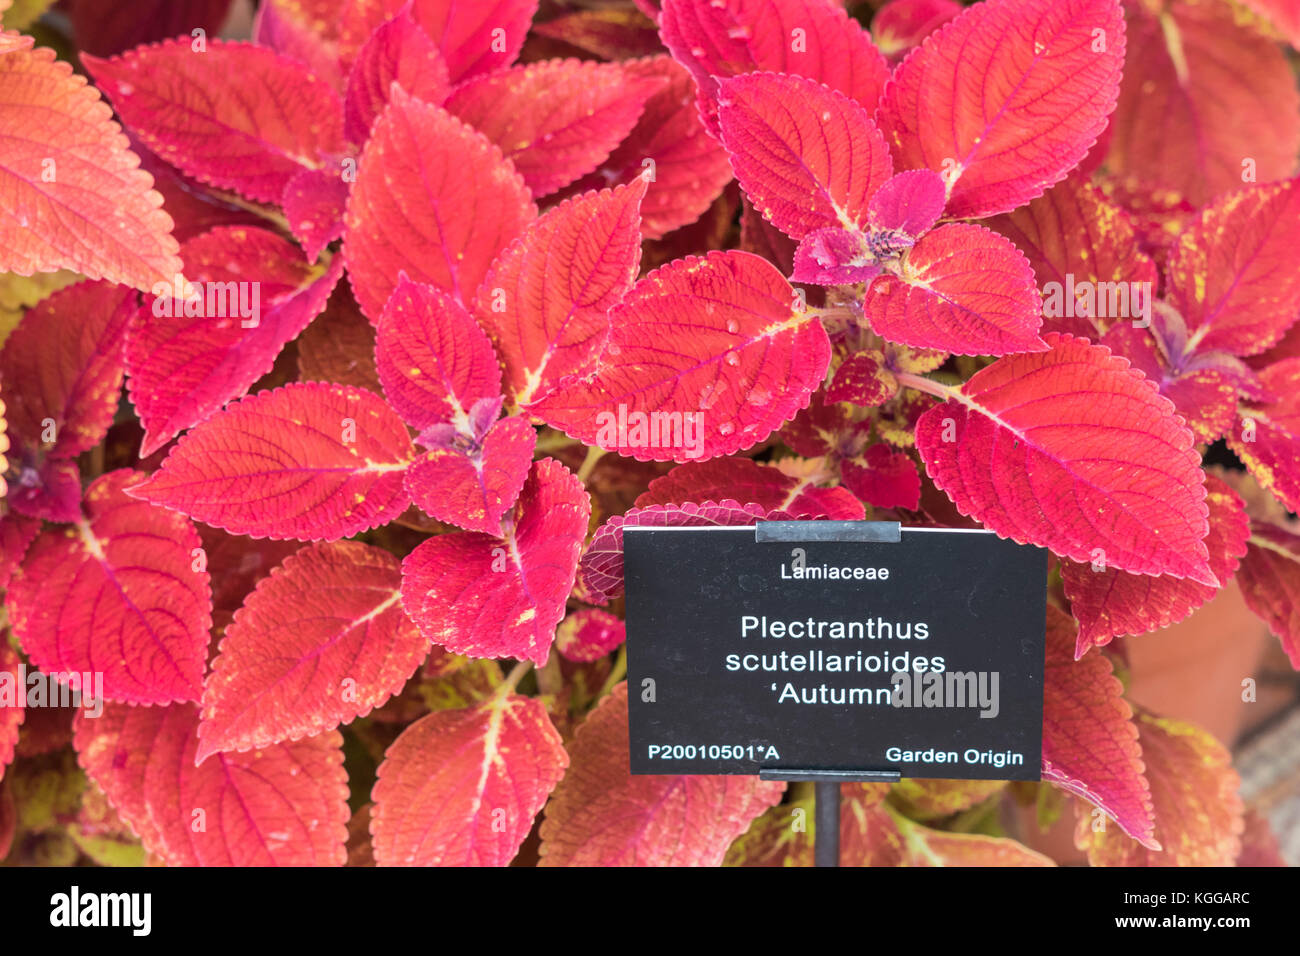 Plectranthus scutellarioides , winter sun, compact low growing cultivar. Stock Photo